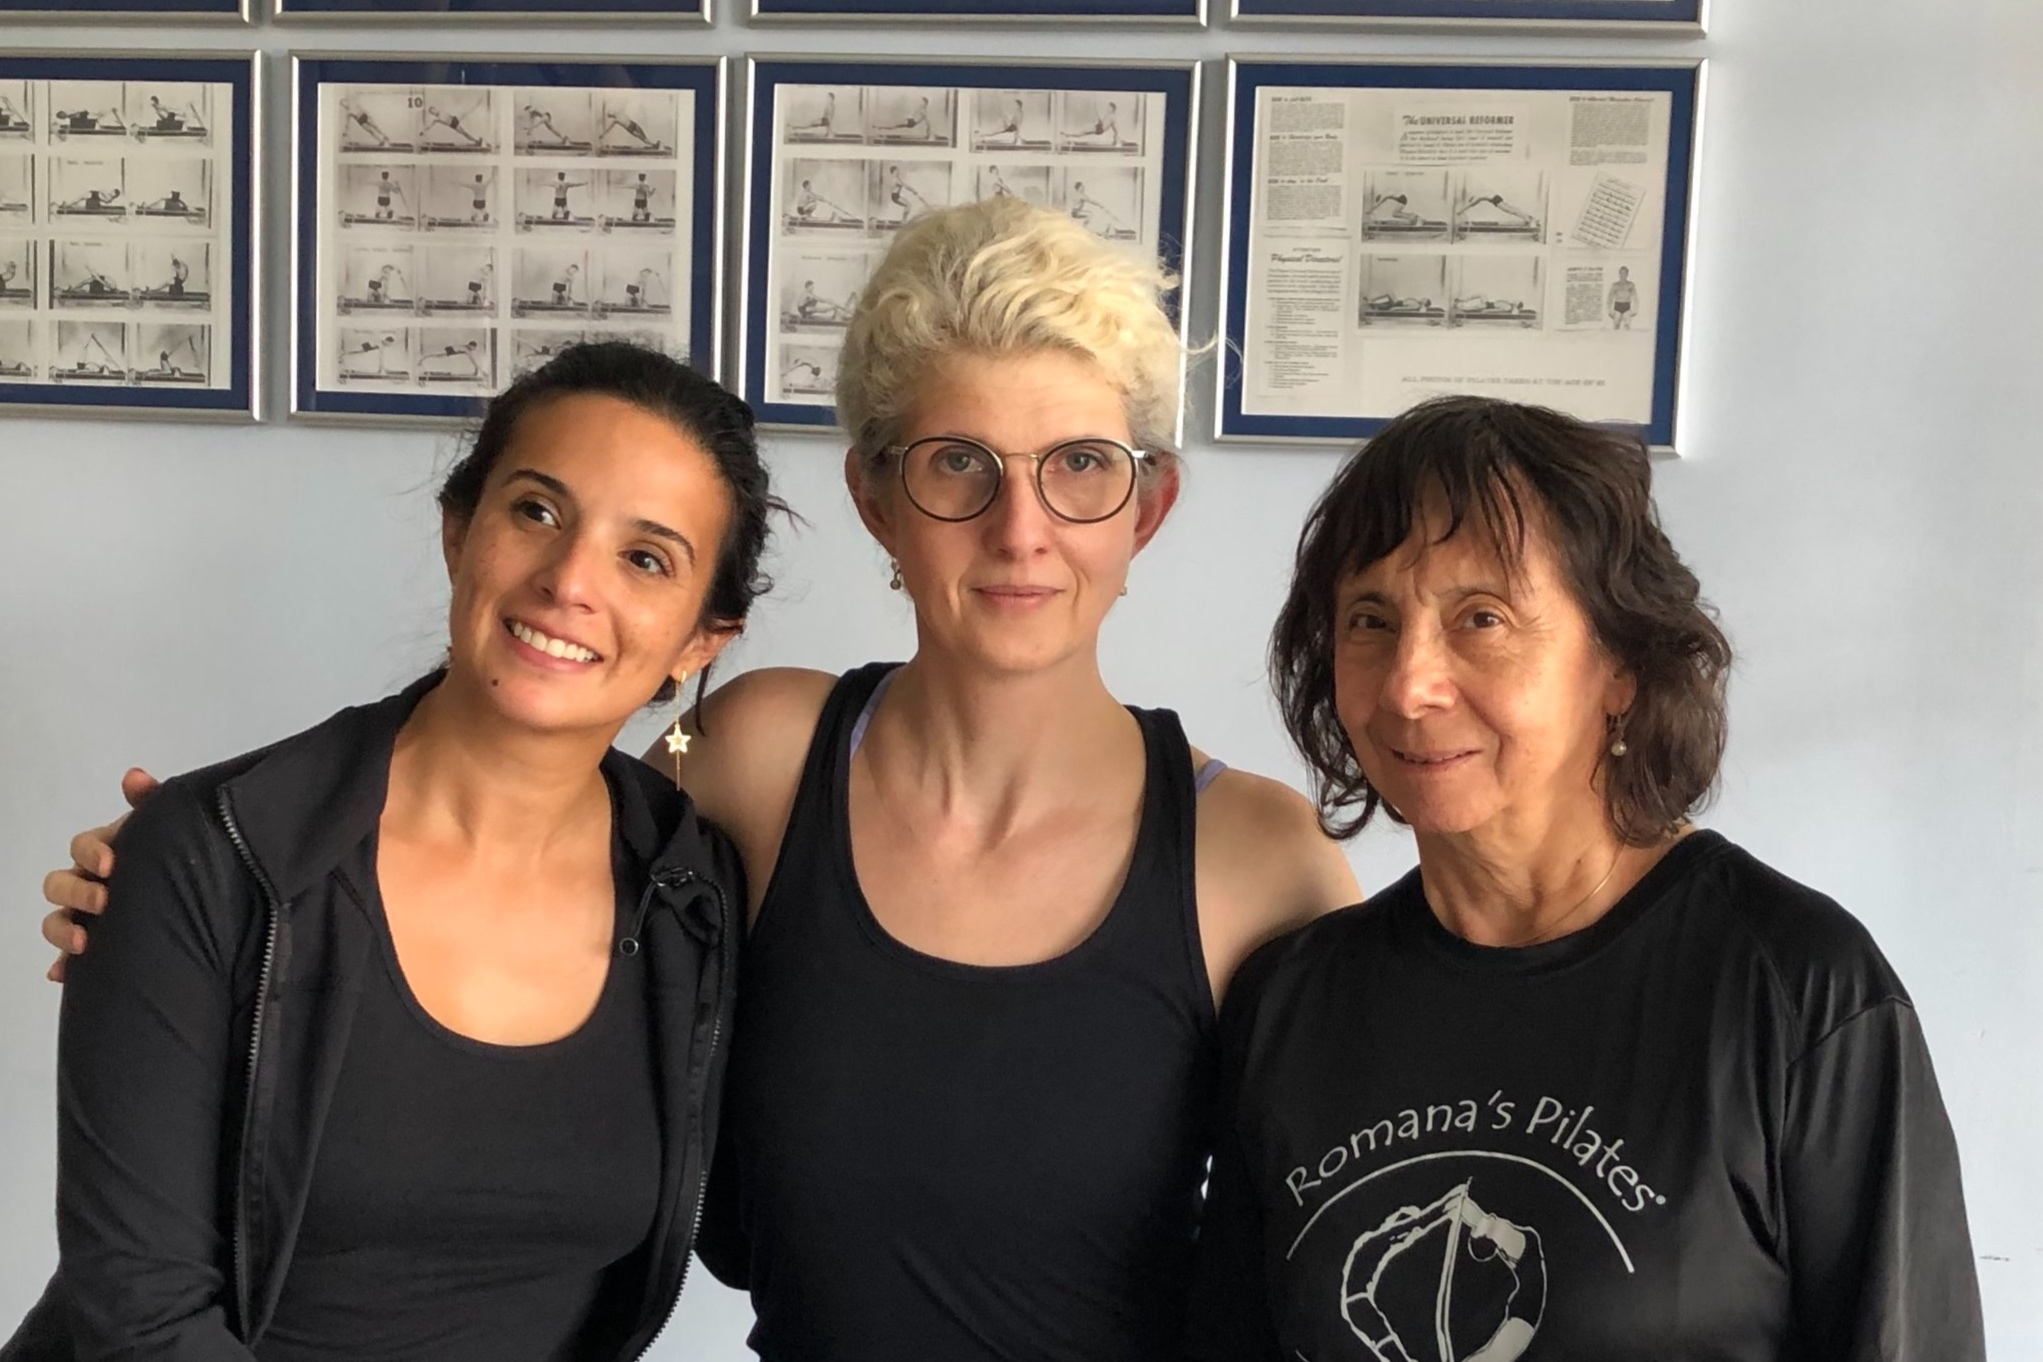 Daria Pace , Swan Lyon and Sari Mejia Santo - March 2019 at Romana's Pilates WHQ Fort Lauderdale